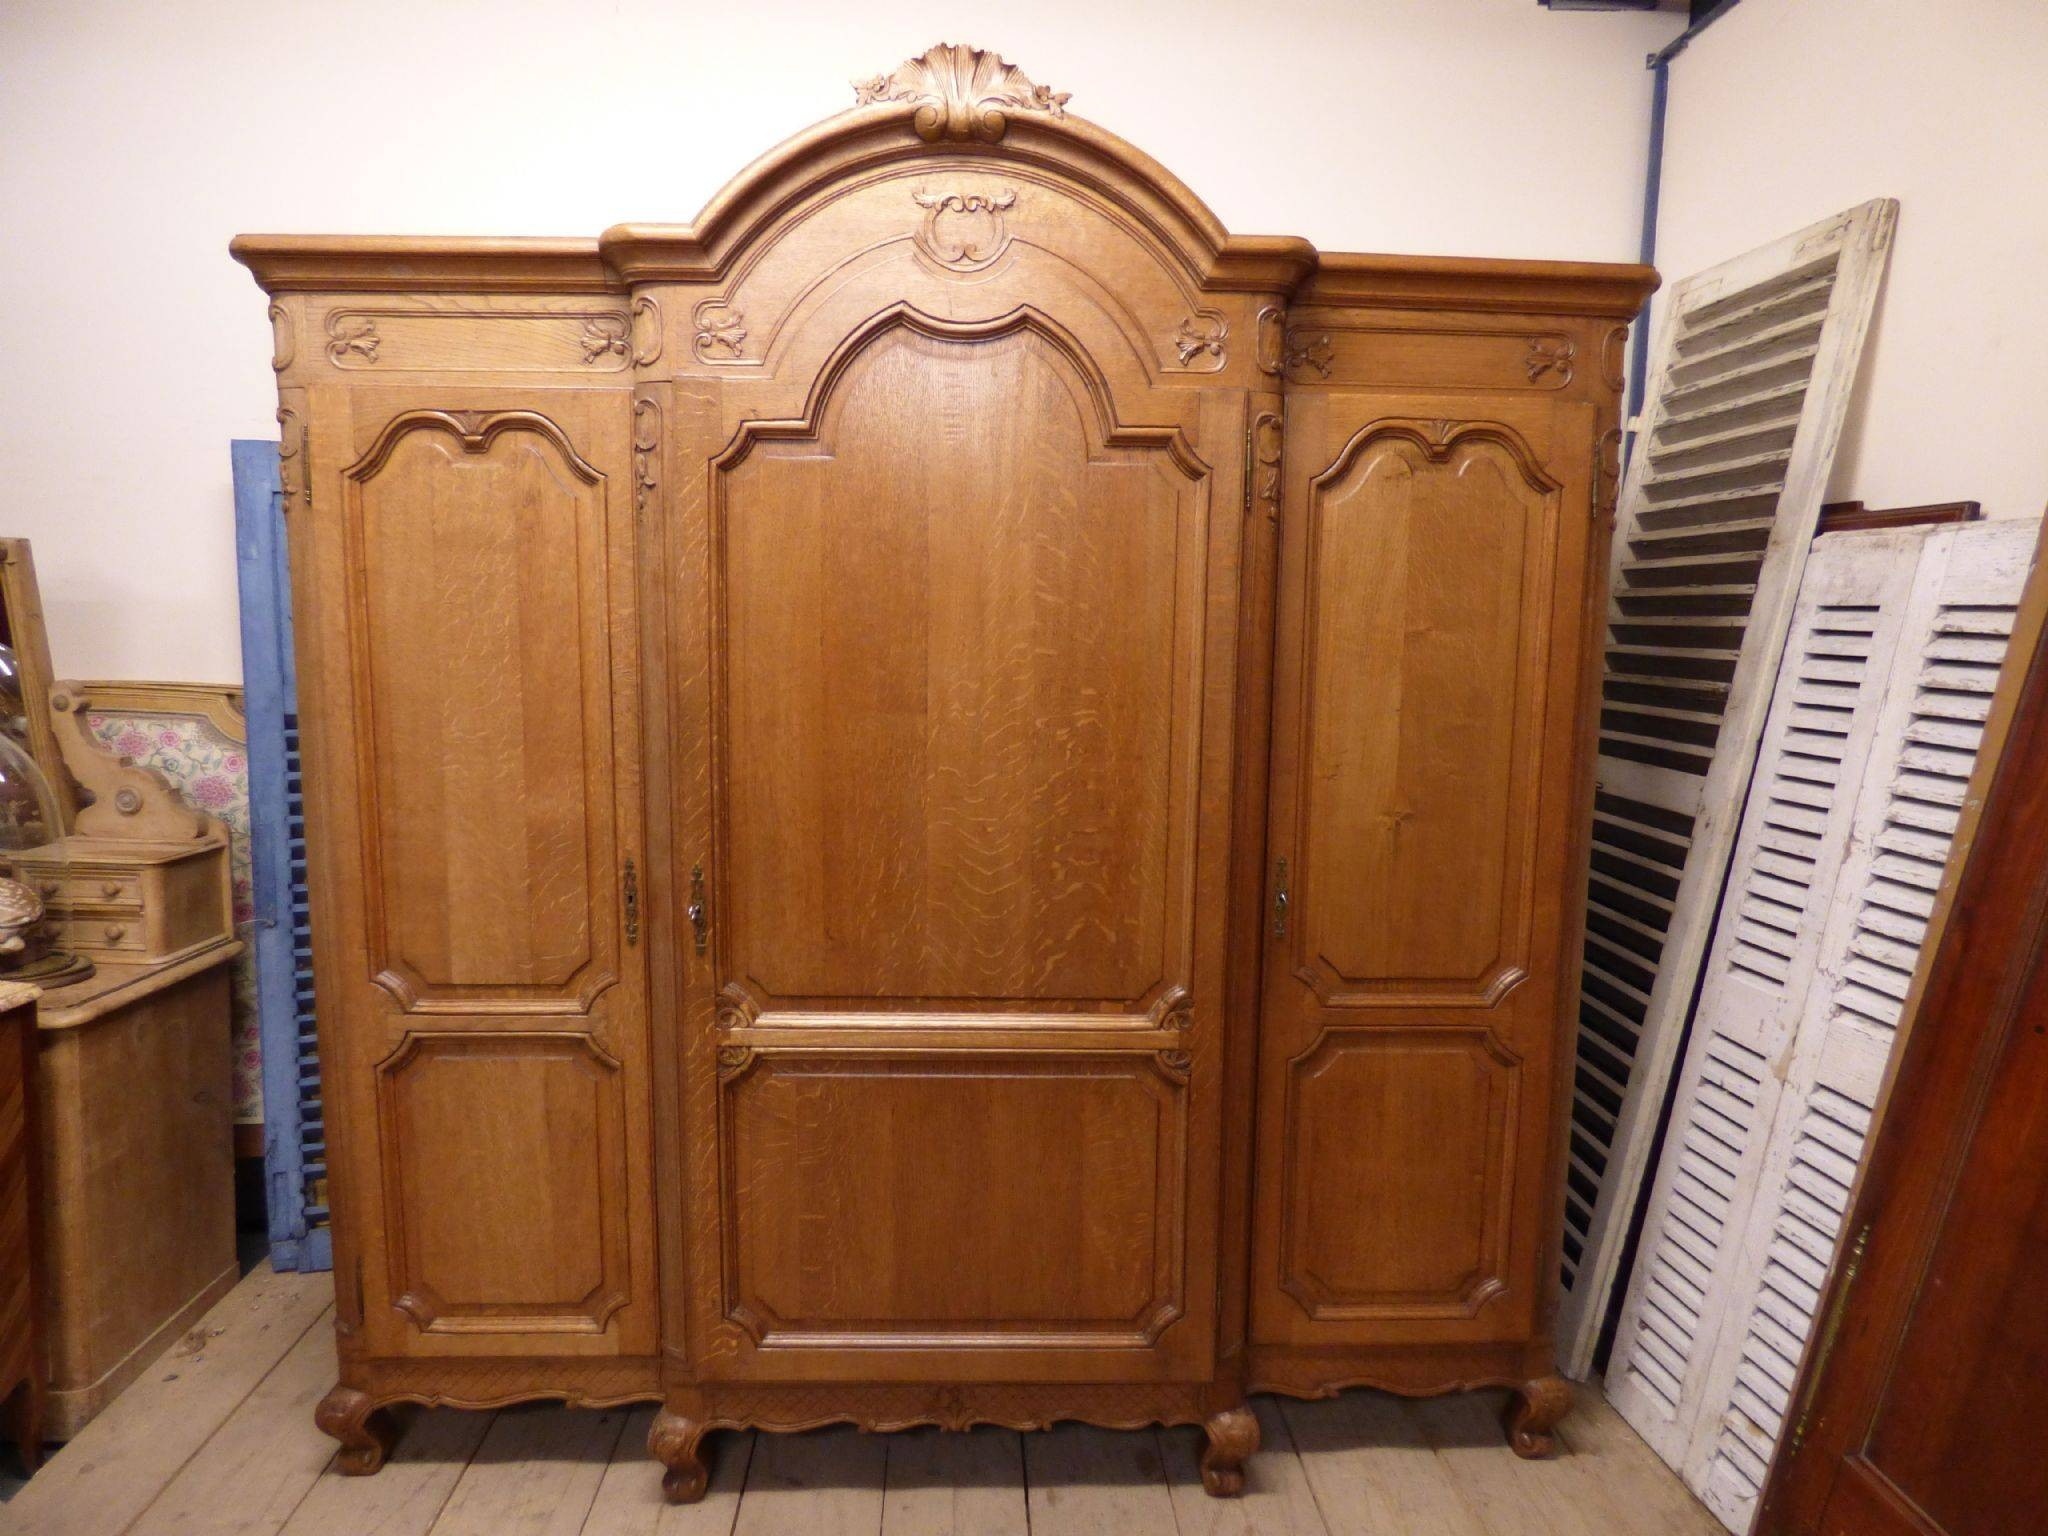 Impressive Antique French Armoire Wardrobe - G12 - The French Depot throughout French Armoires Wardrobes (Image 11 of 15)